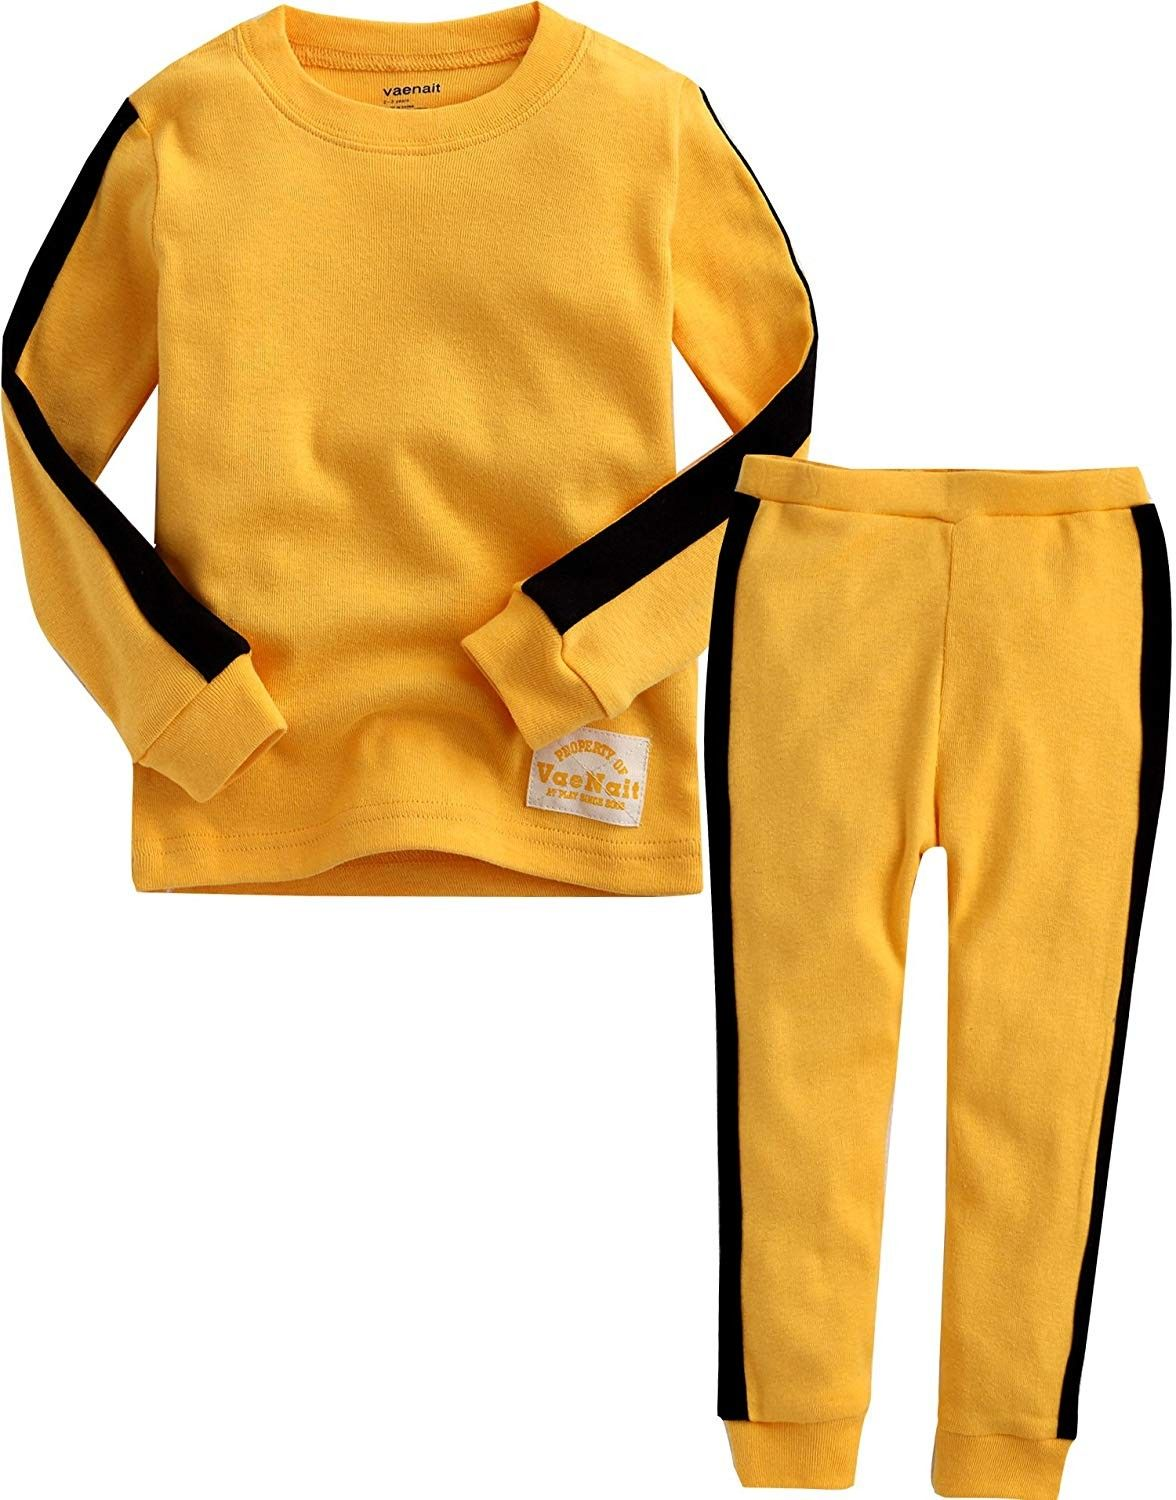 Little Boys Girls Pajamas Sets Clothes 2pcs Tops and Pants Outfits Kids Sleepwear 100/% Cotton